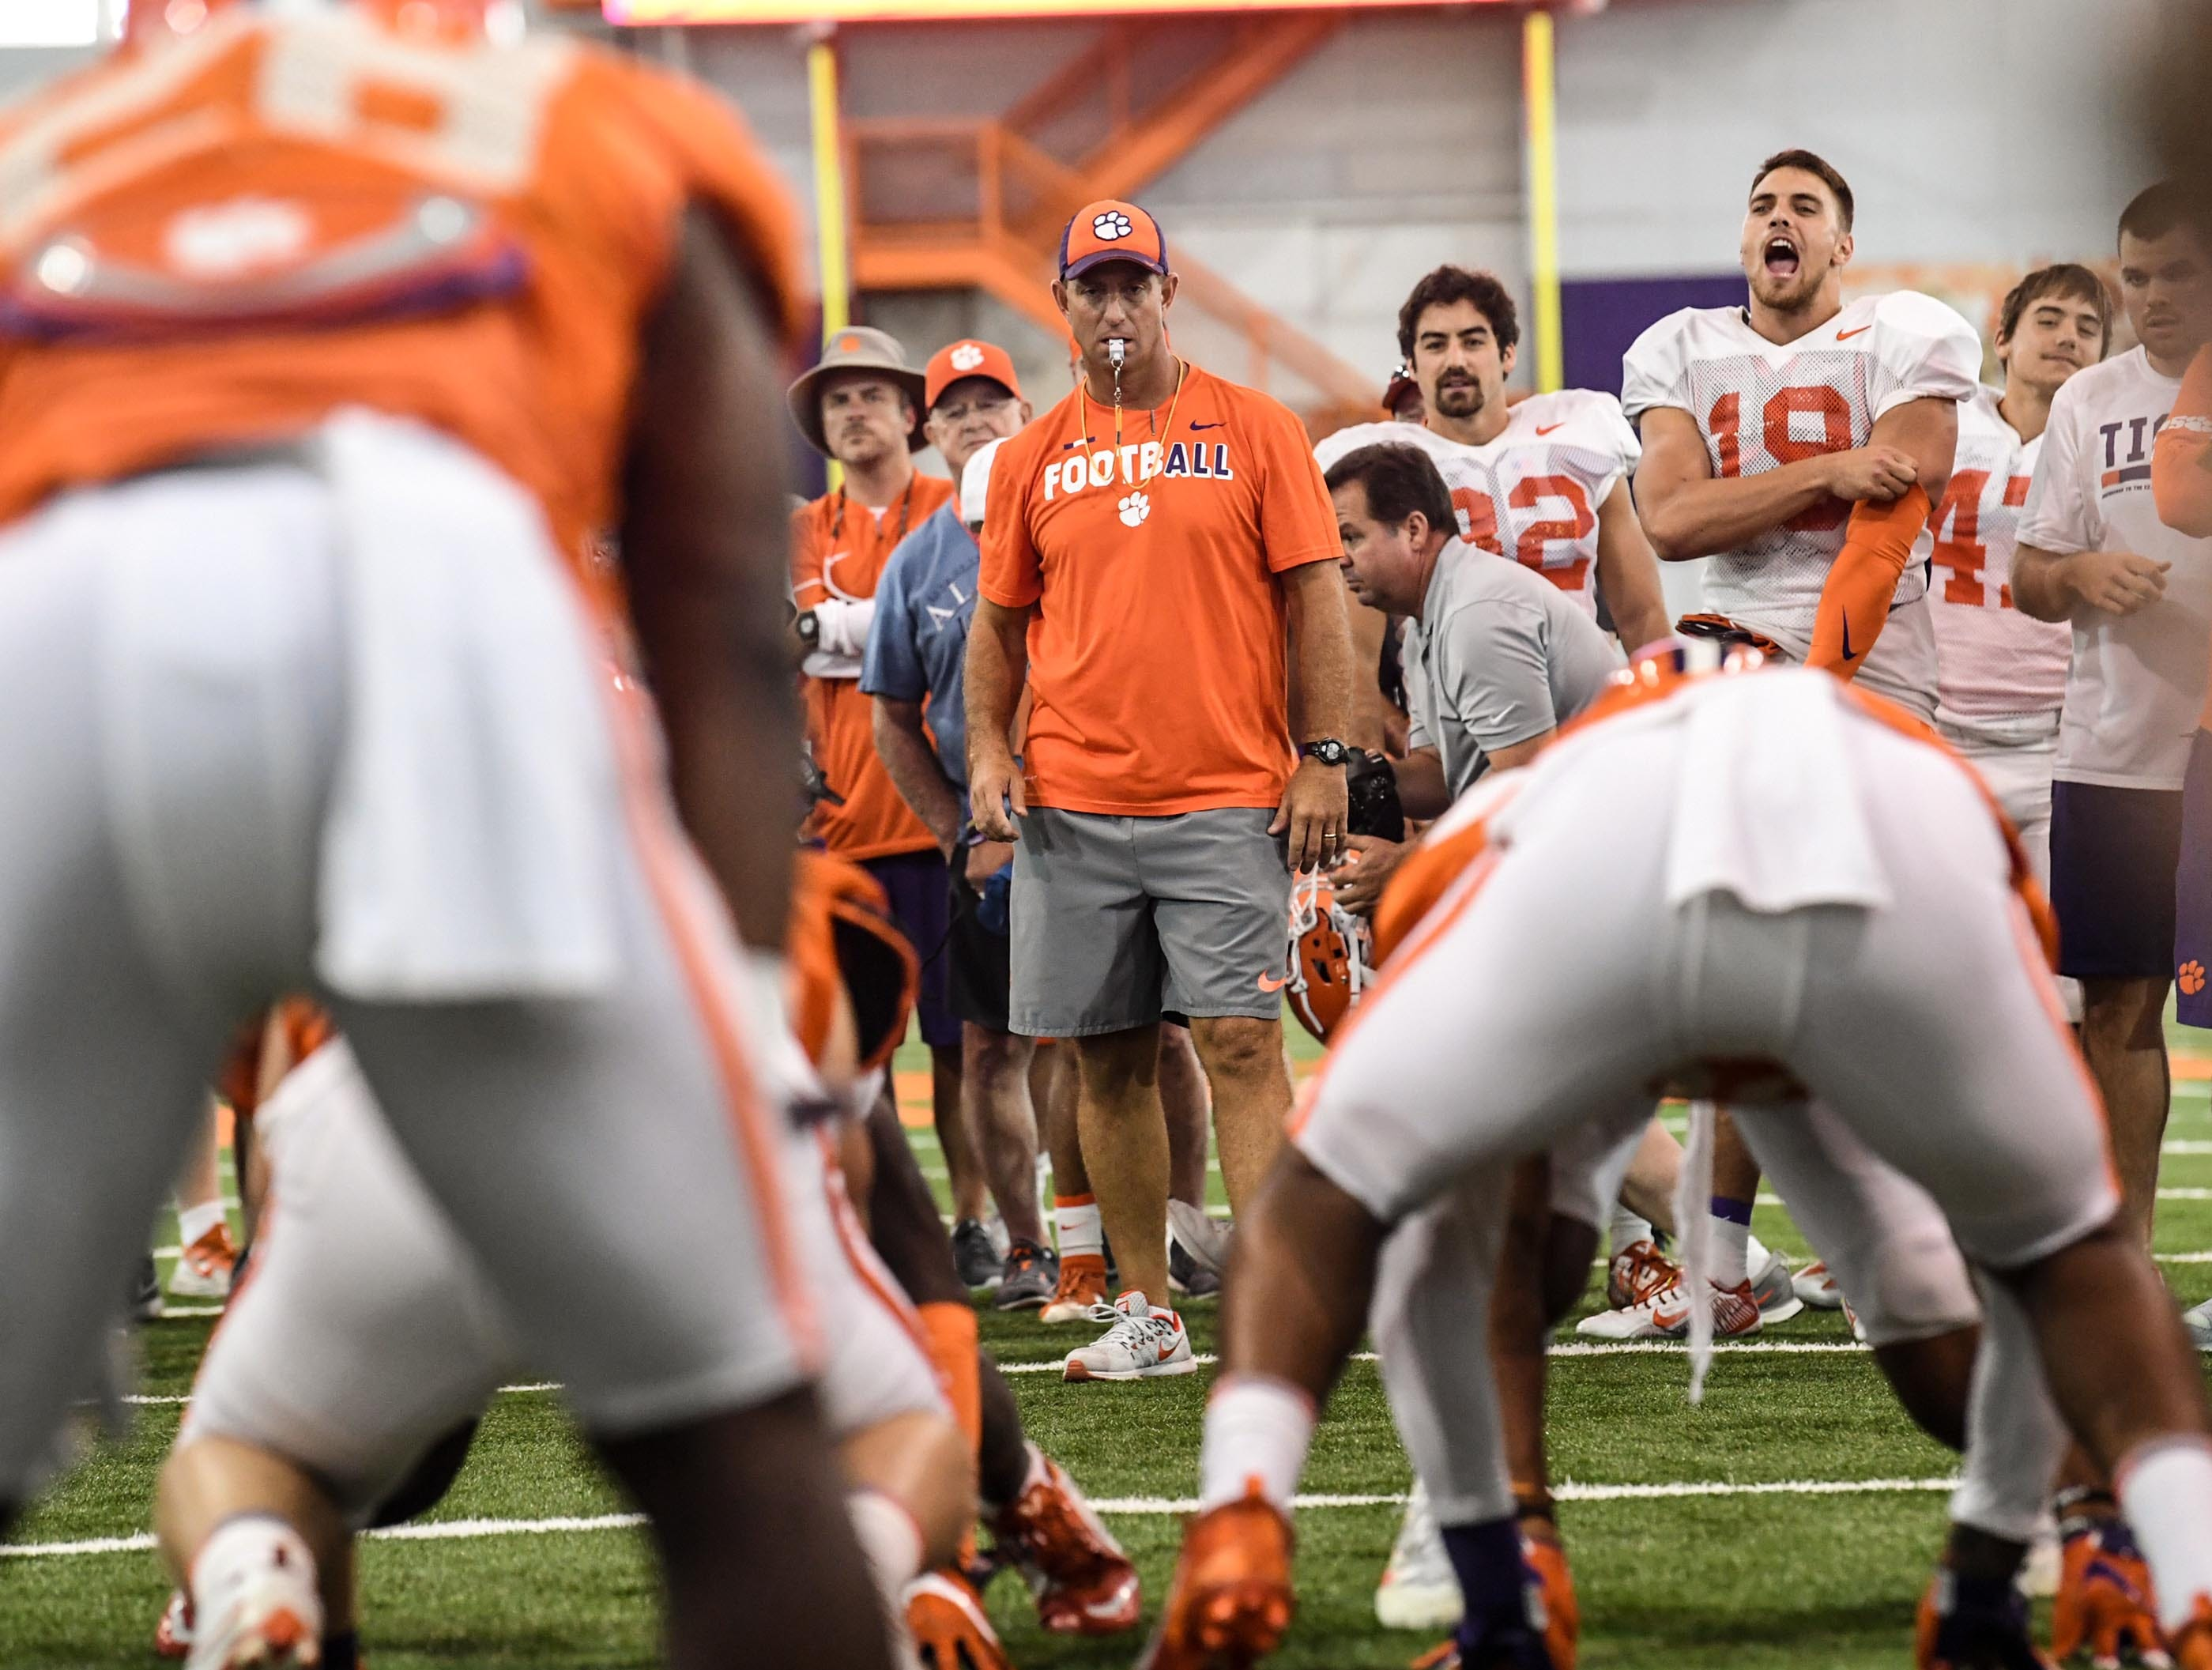 Clemson head coach Dabo Swinney watches Clemson running back Tavien Feaster (28) line up to run through a defense during fall practice in Clemson on Wednesday.